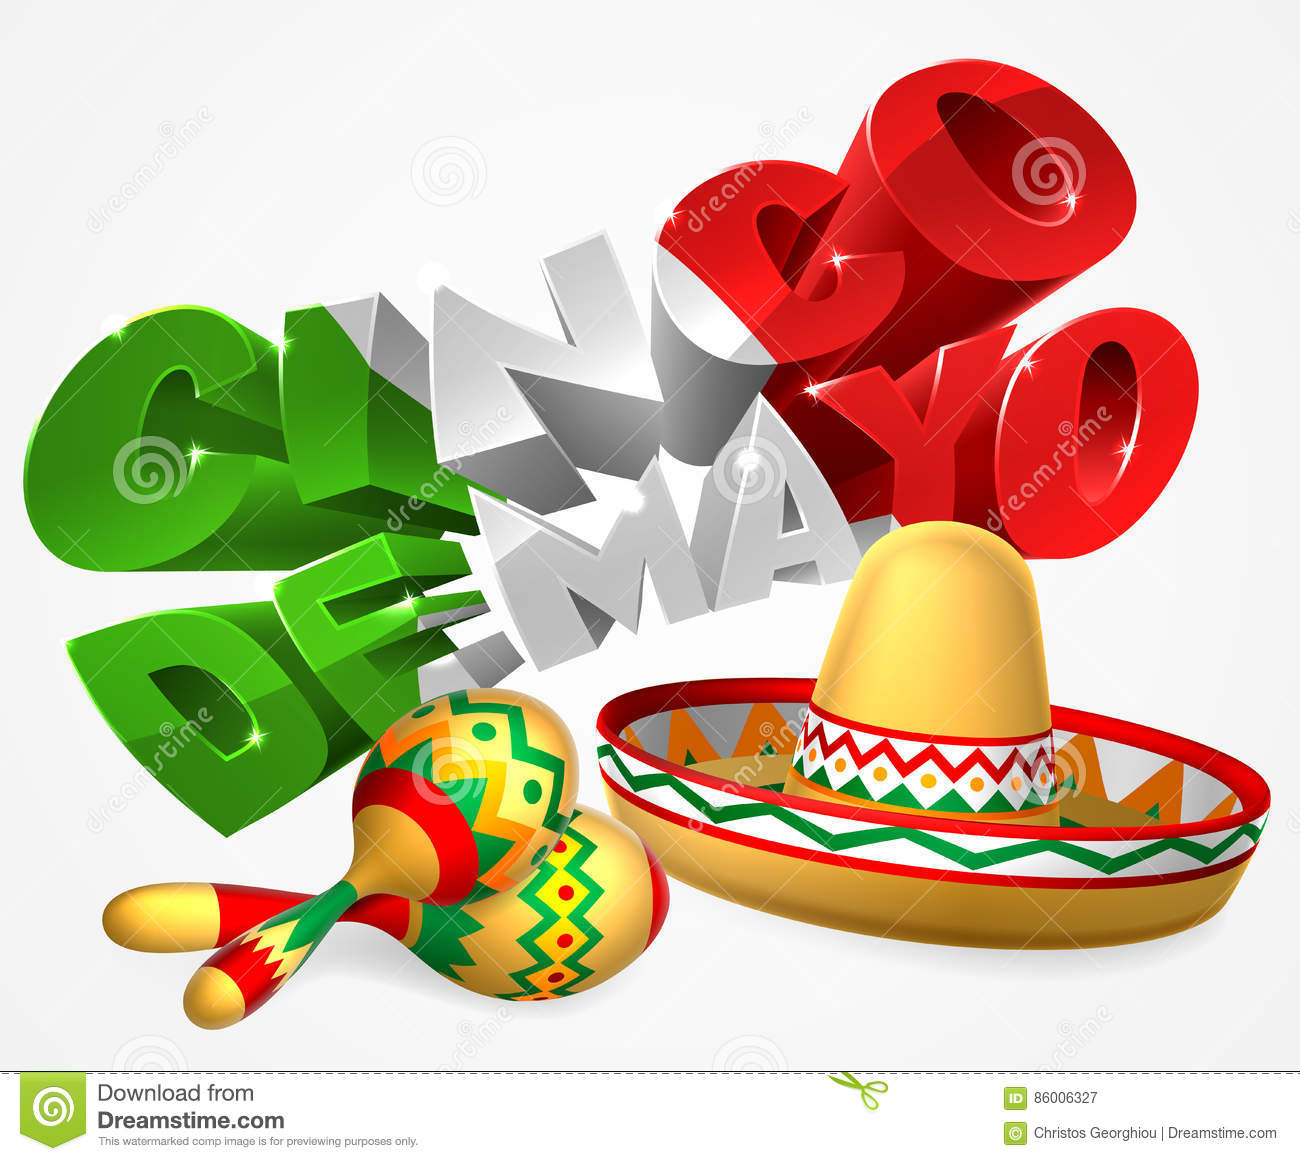 A mexican cinco de mayo label sign decal design with sombrero straw sun hat and maracas shakers